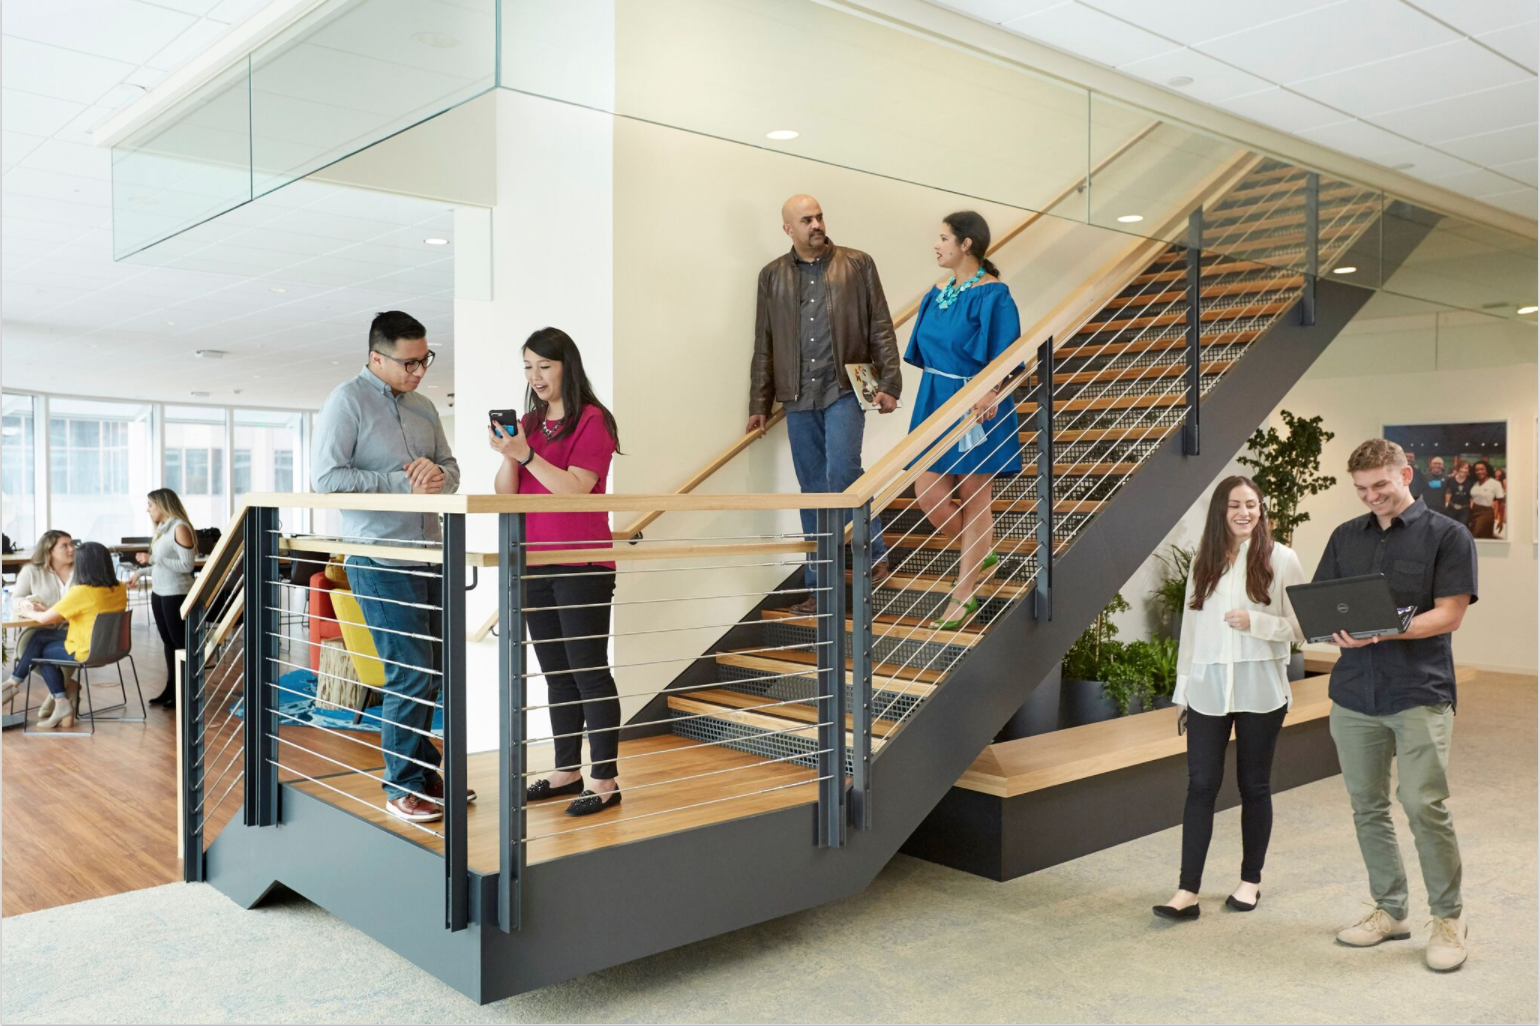 Every Three Floors Of Salesforce Tower Is Connected Into One Seamless  U201cvillage,u201d With Connecting Open Staircases That Let You Travel Between  Teams And ...